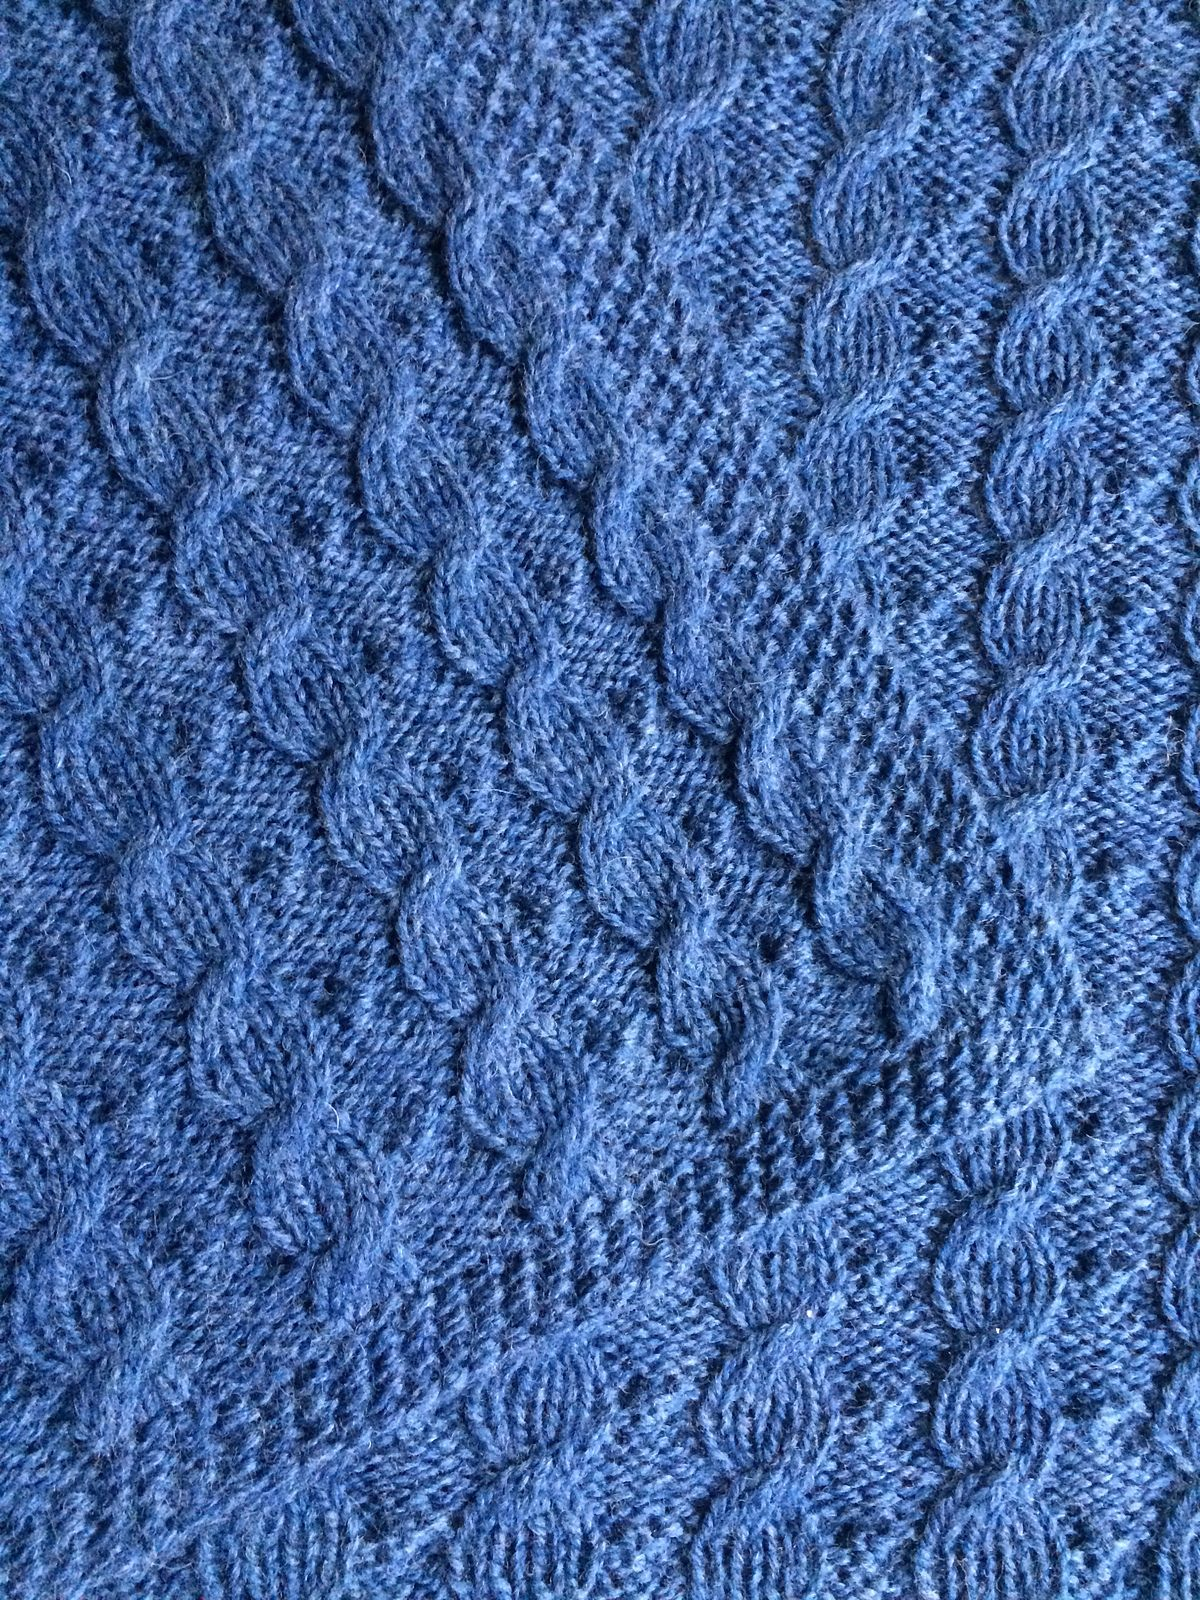 Reversible cable knitting patterns knitting patterns cable and free knitting pattern for reversible cable baby blanket bankloansurffo Images